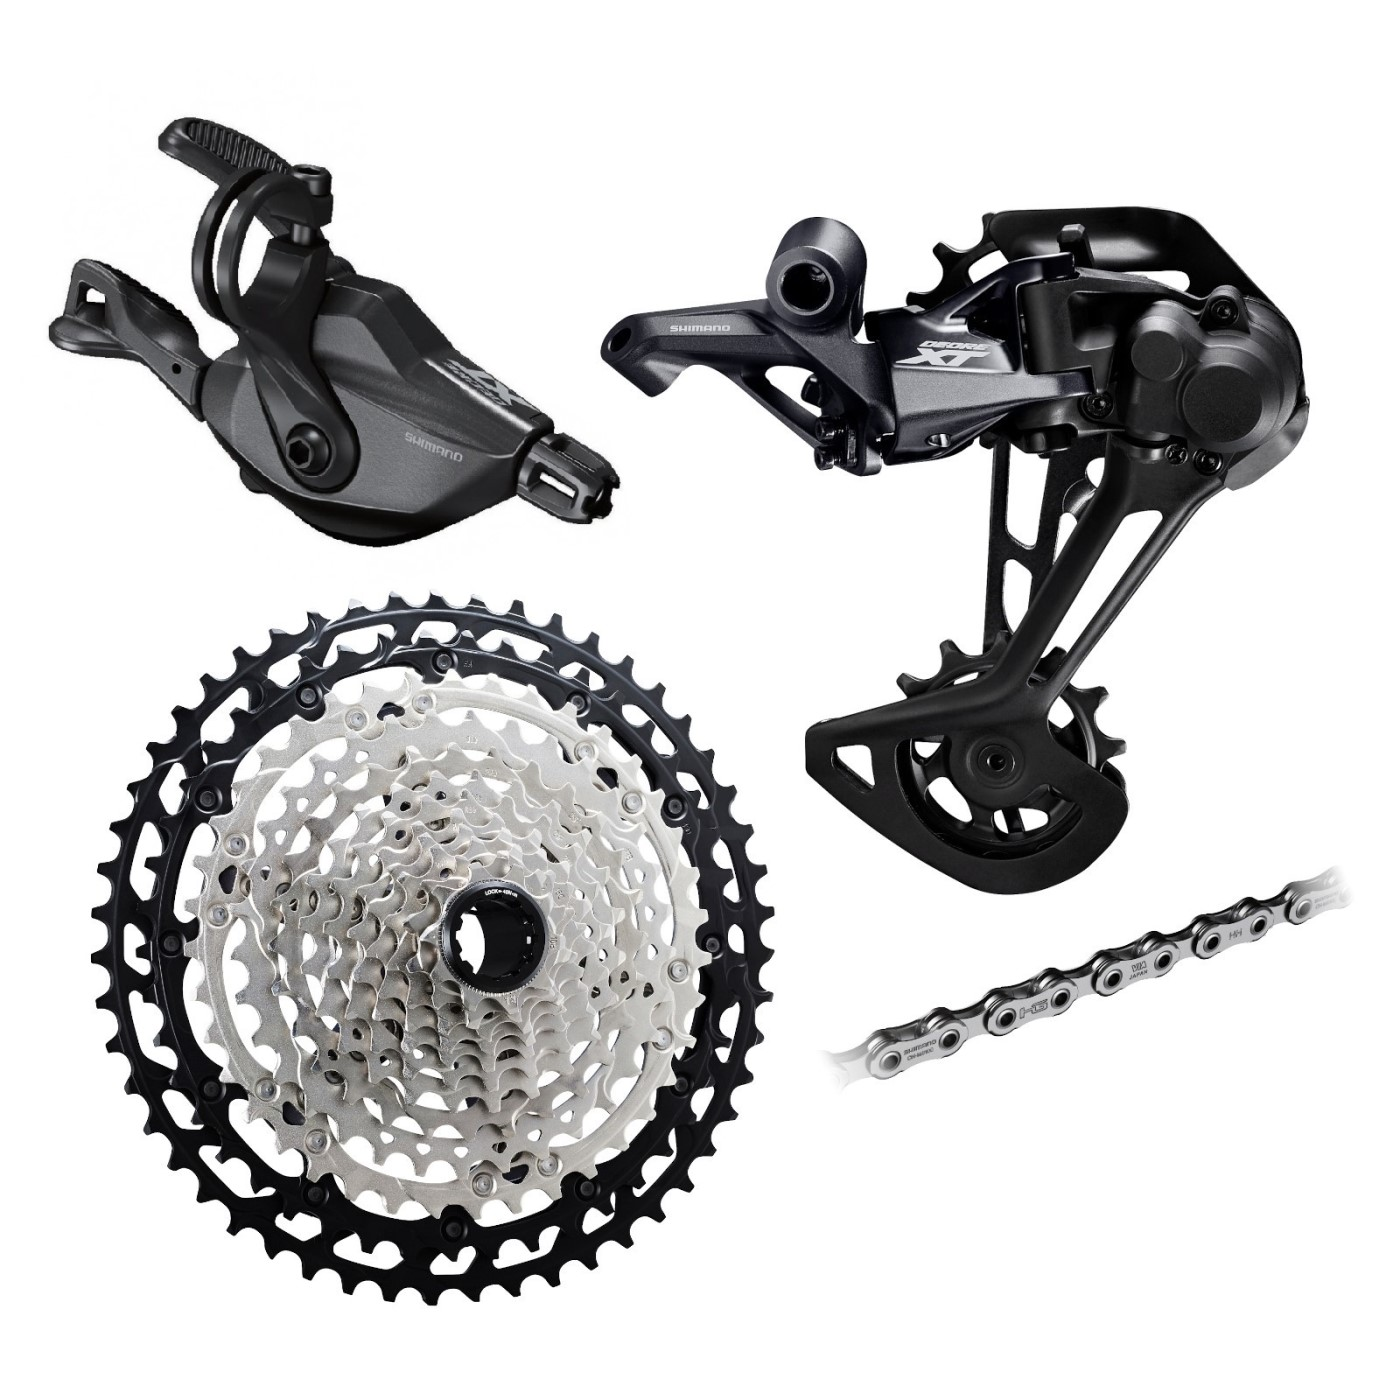 Shimano Deore XT M8100 1x12 Upgrade Kit